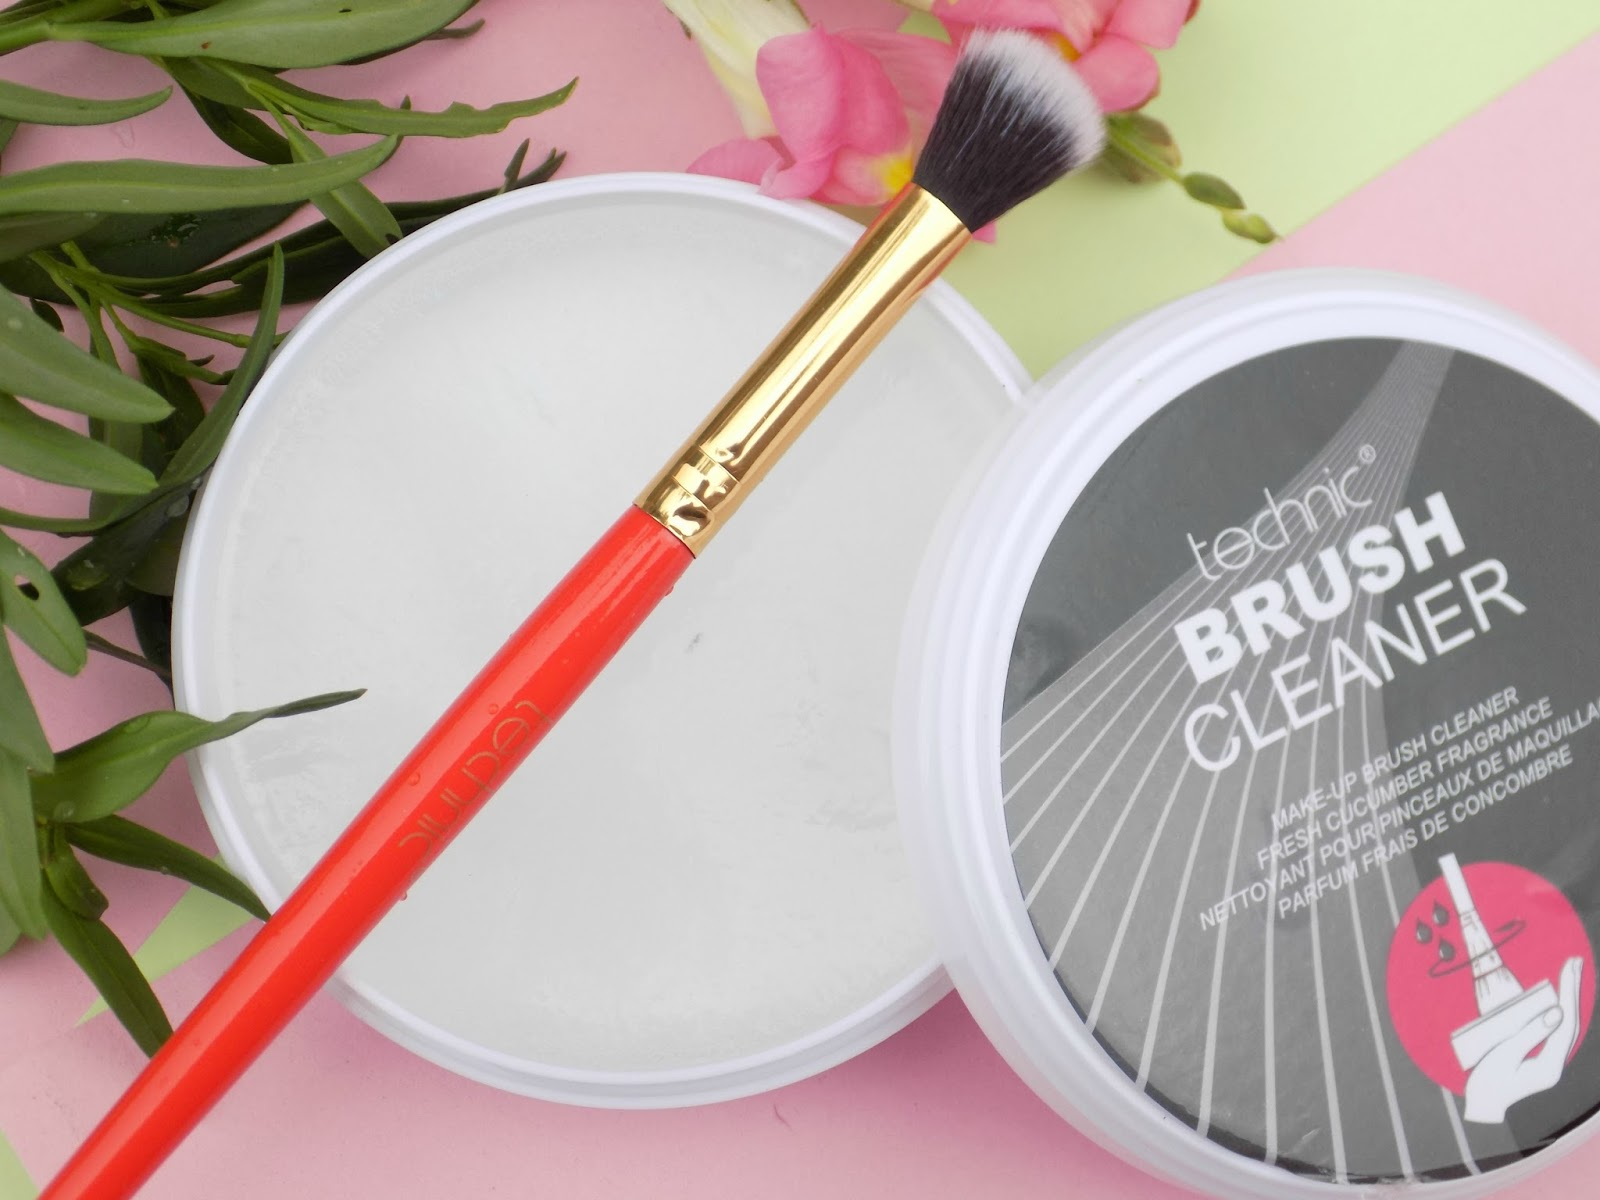 Technic makeup brush cleaner review